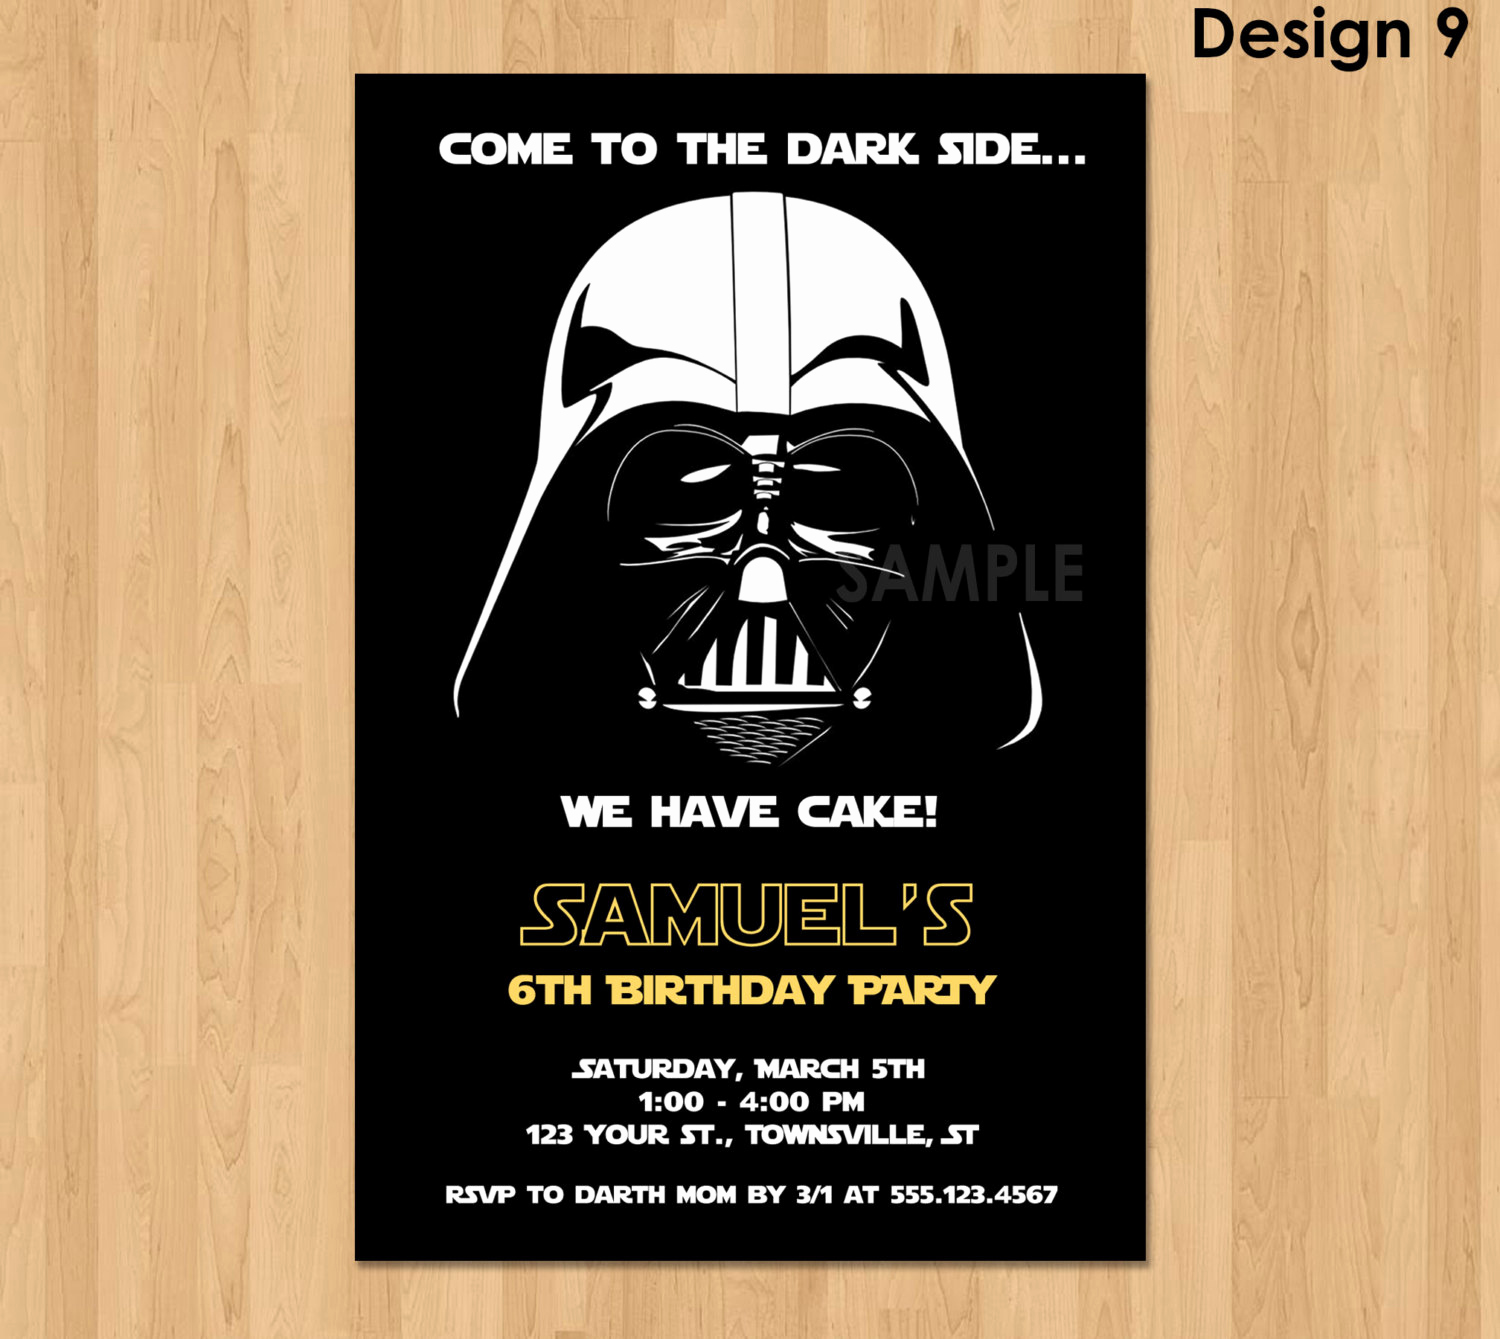 Star Wars Invitation Templates Beautiful Darth Vader Invitation Star Wars Birthday Invitation Star